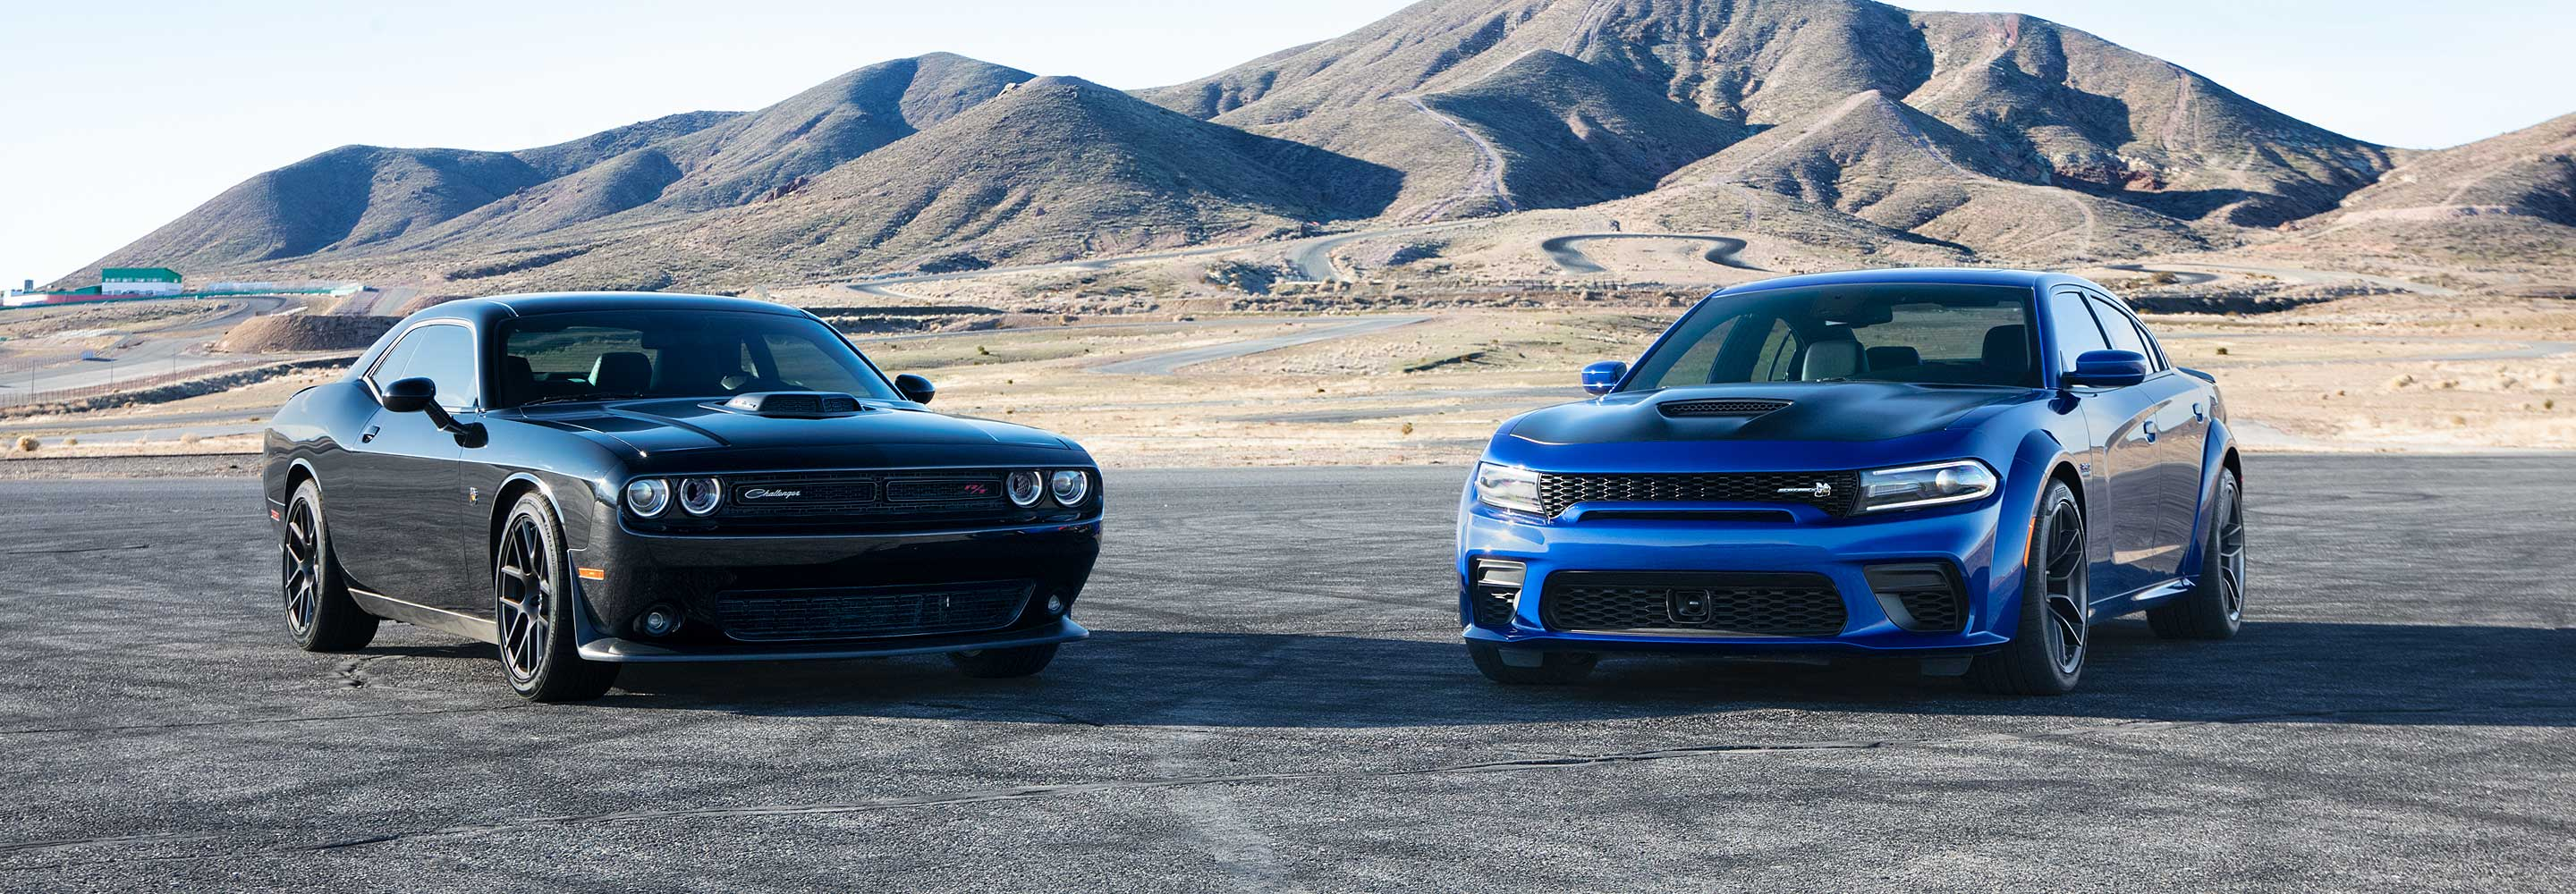 Dodge Named Best Style Brand for Third Year in a Row by KBB